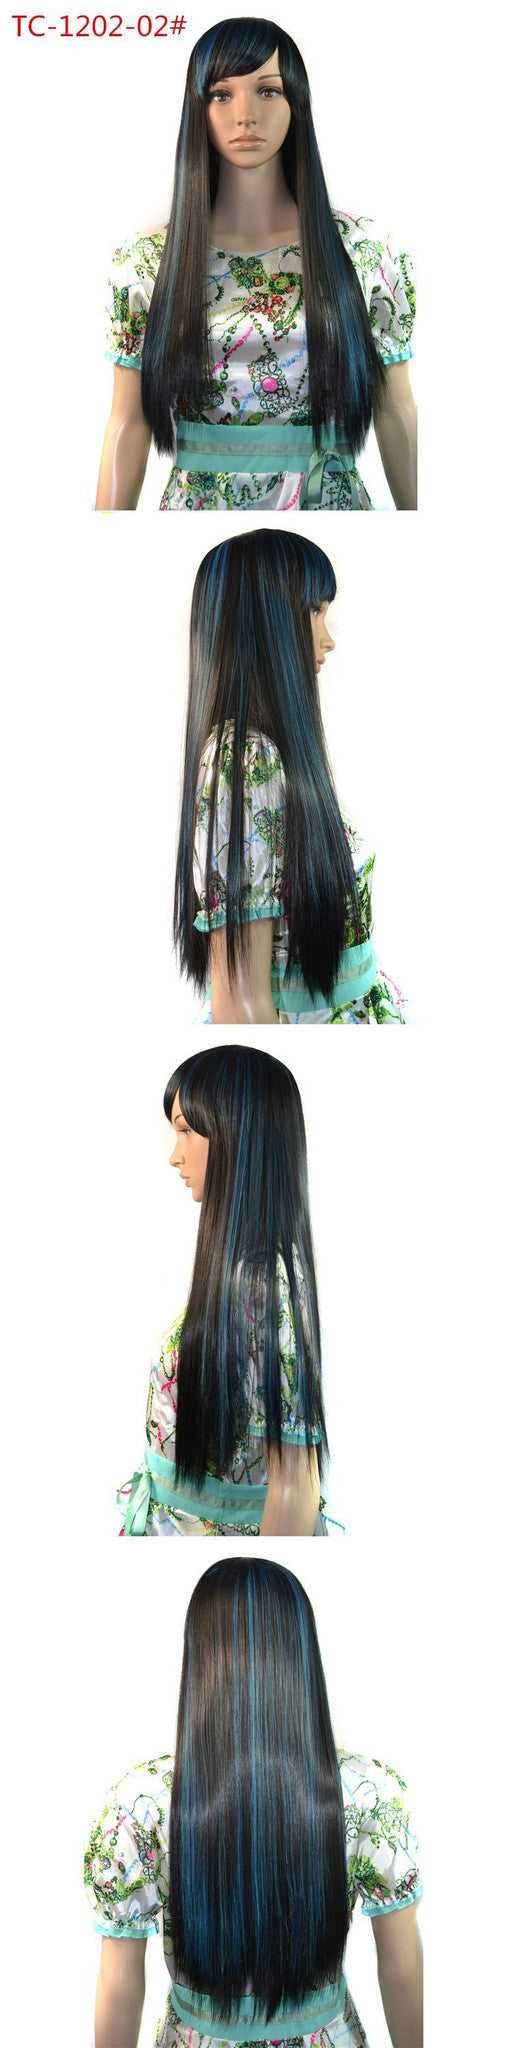 Princess Cosplay Wig TC-1202-02# heat resistant synthetic long hair 55--65cm beauty girl Cosplay wig